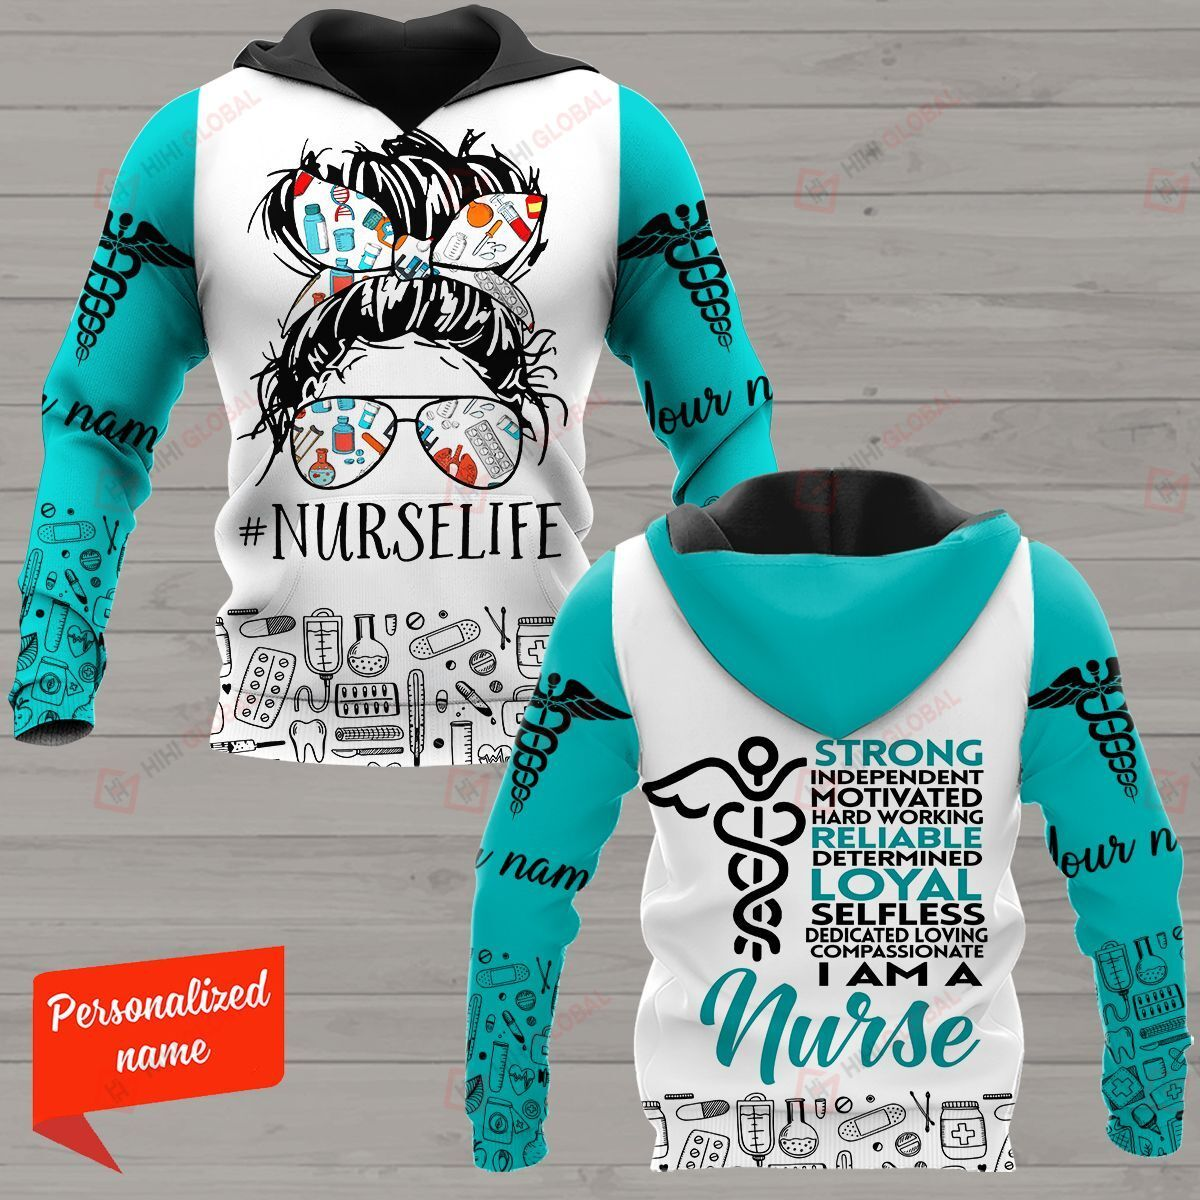 Strong Independent Motivated Hard Working Reliable Determined Loyal Selfless Dedicated Loving Compassionate I Am A Nurse Nurse Personalized ALL OVER PRINTED SHIRTS